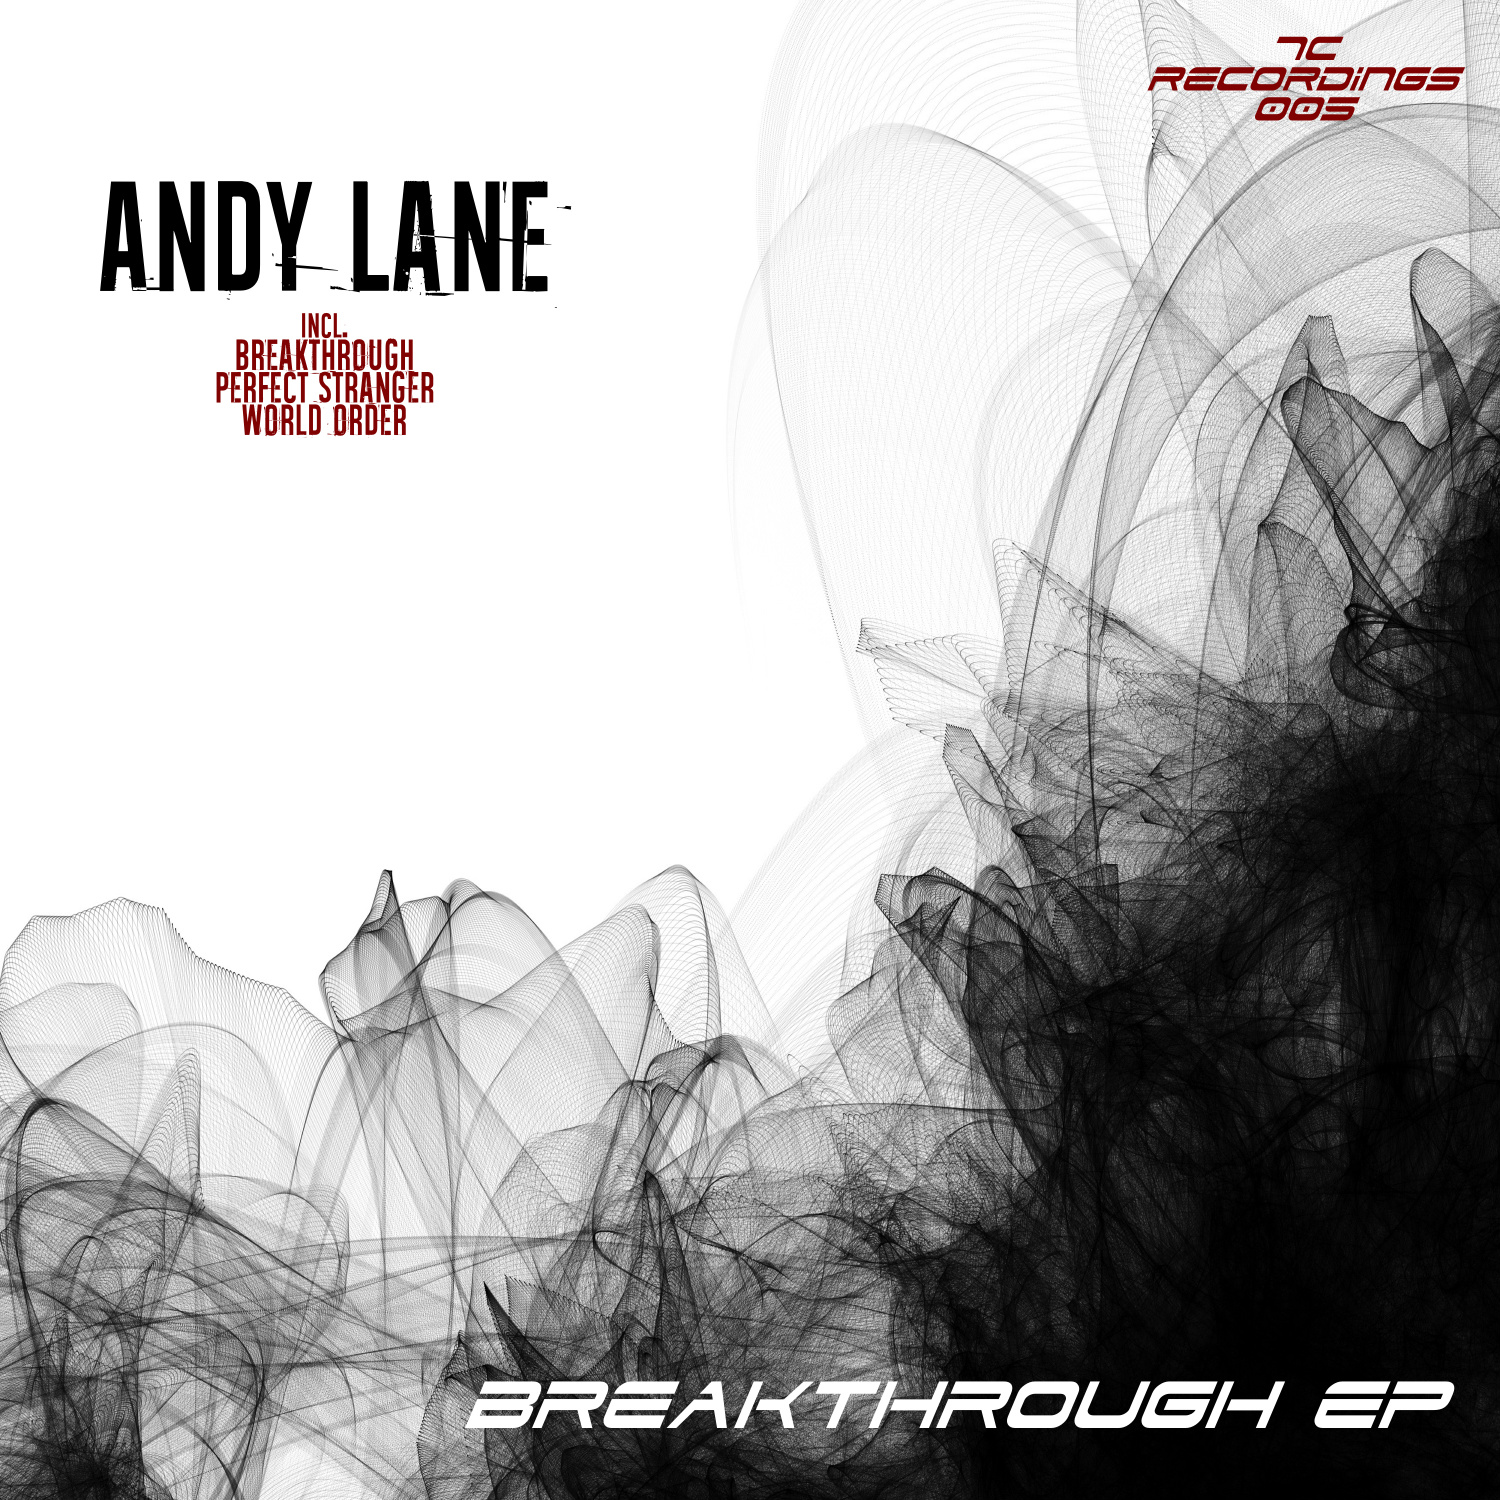 Andy Lane - Breakthrough ep (7c Recordings)